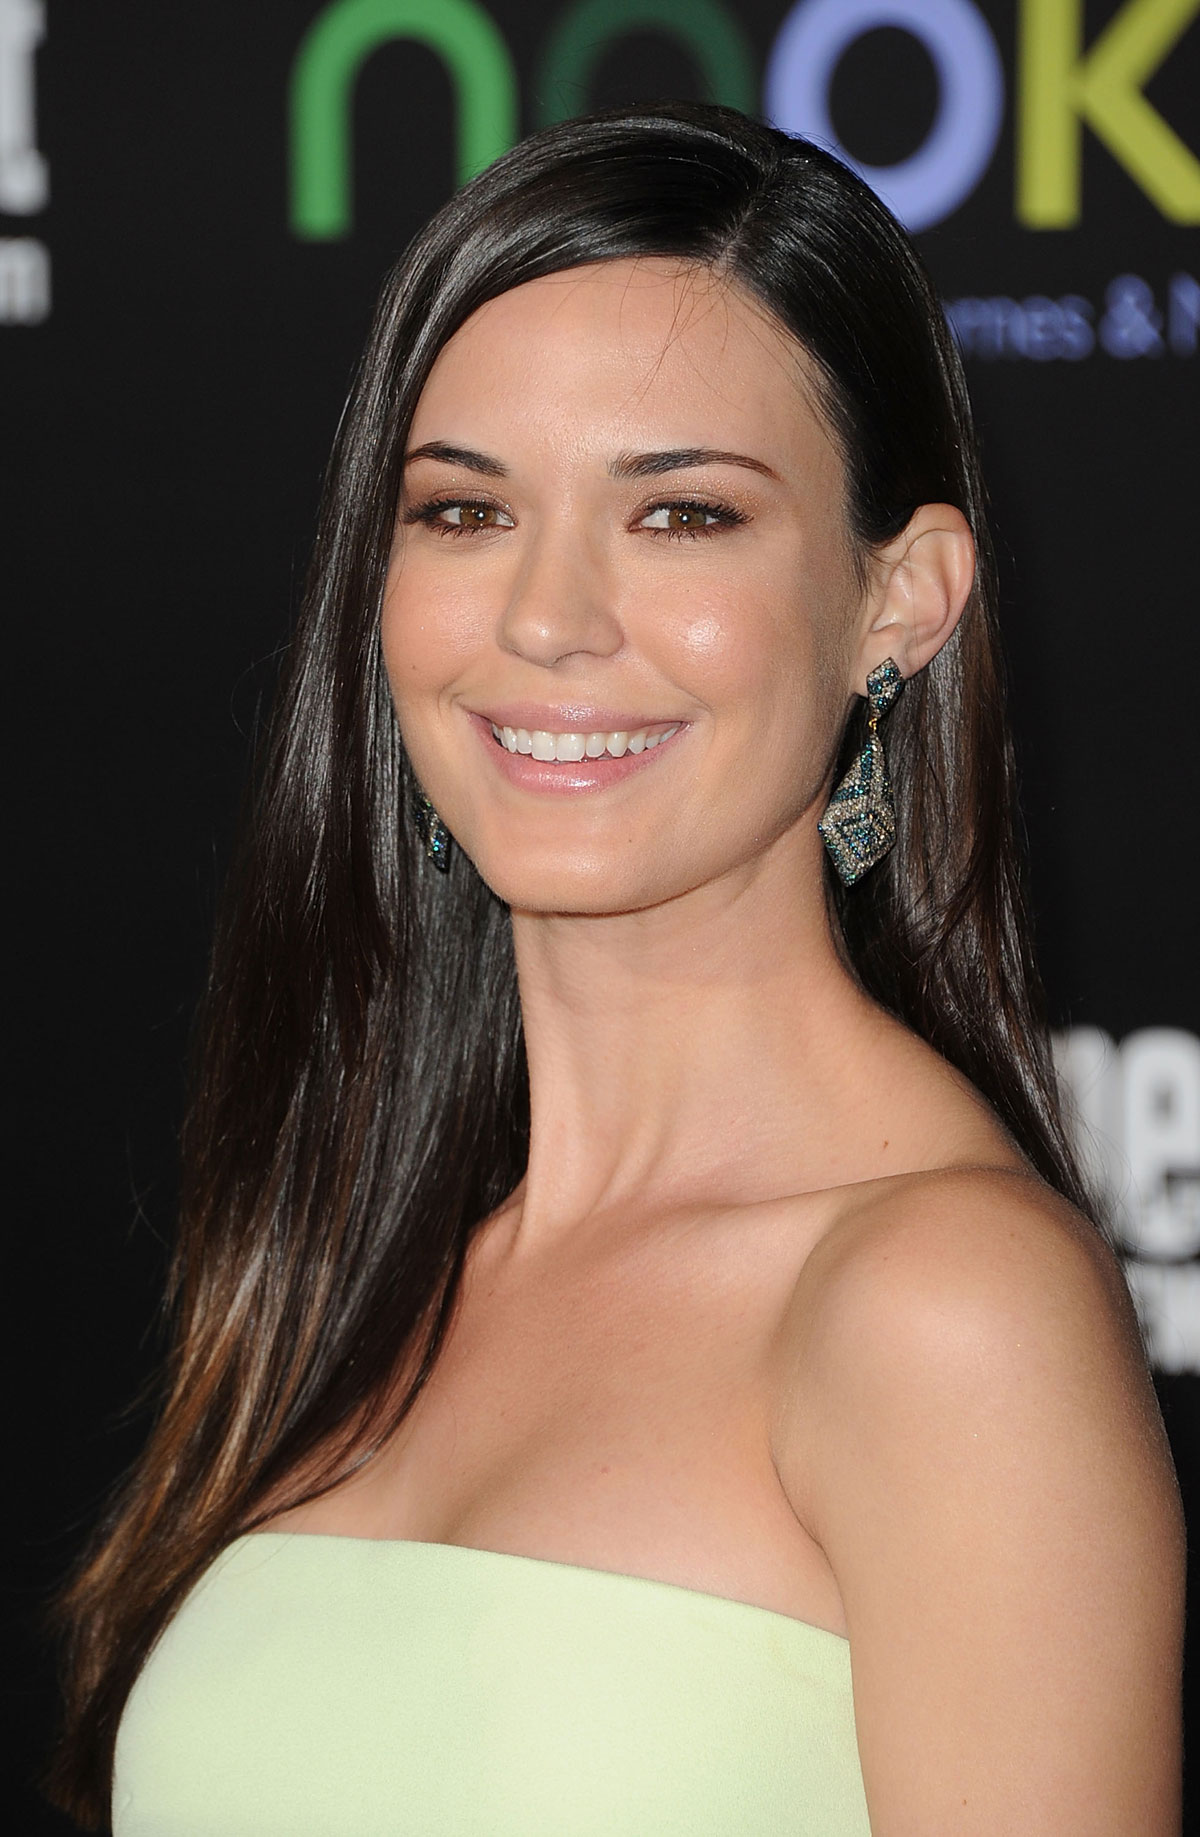 Odette Annable At The Hunger Games Premiere In Los Angeles